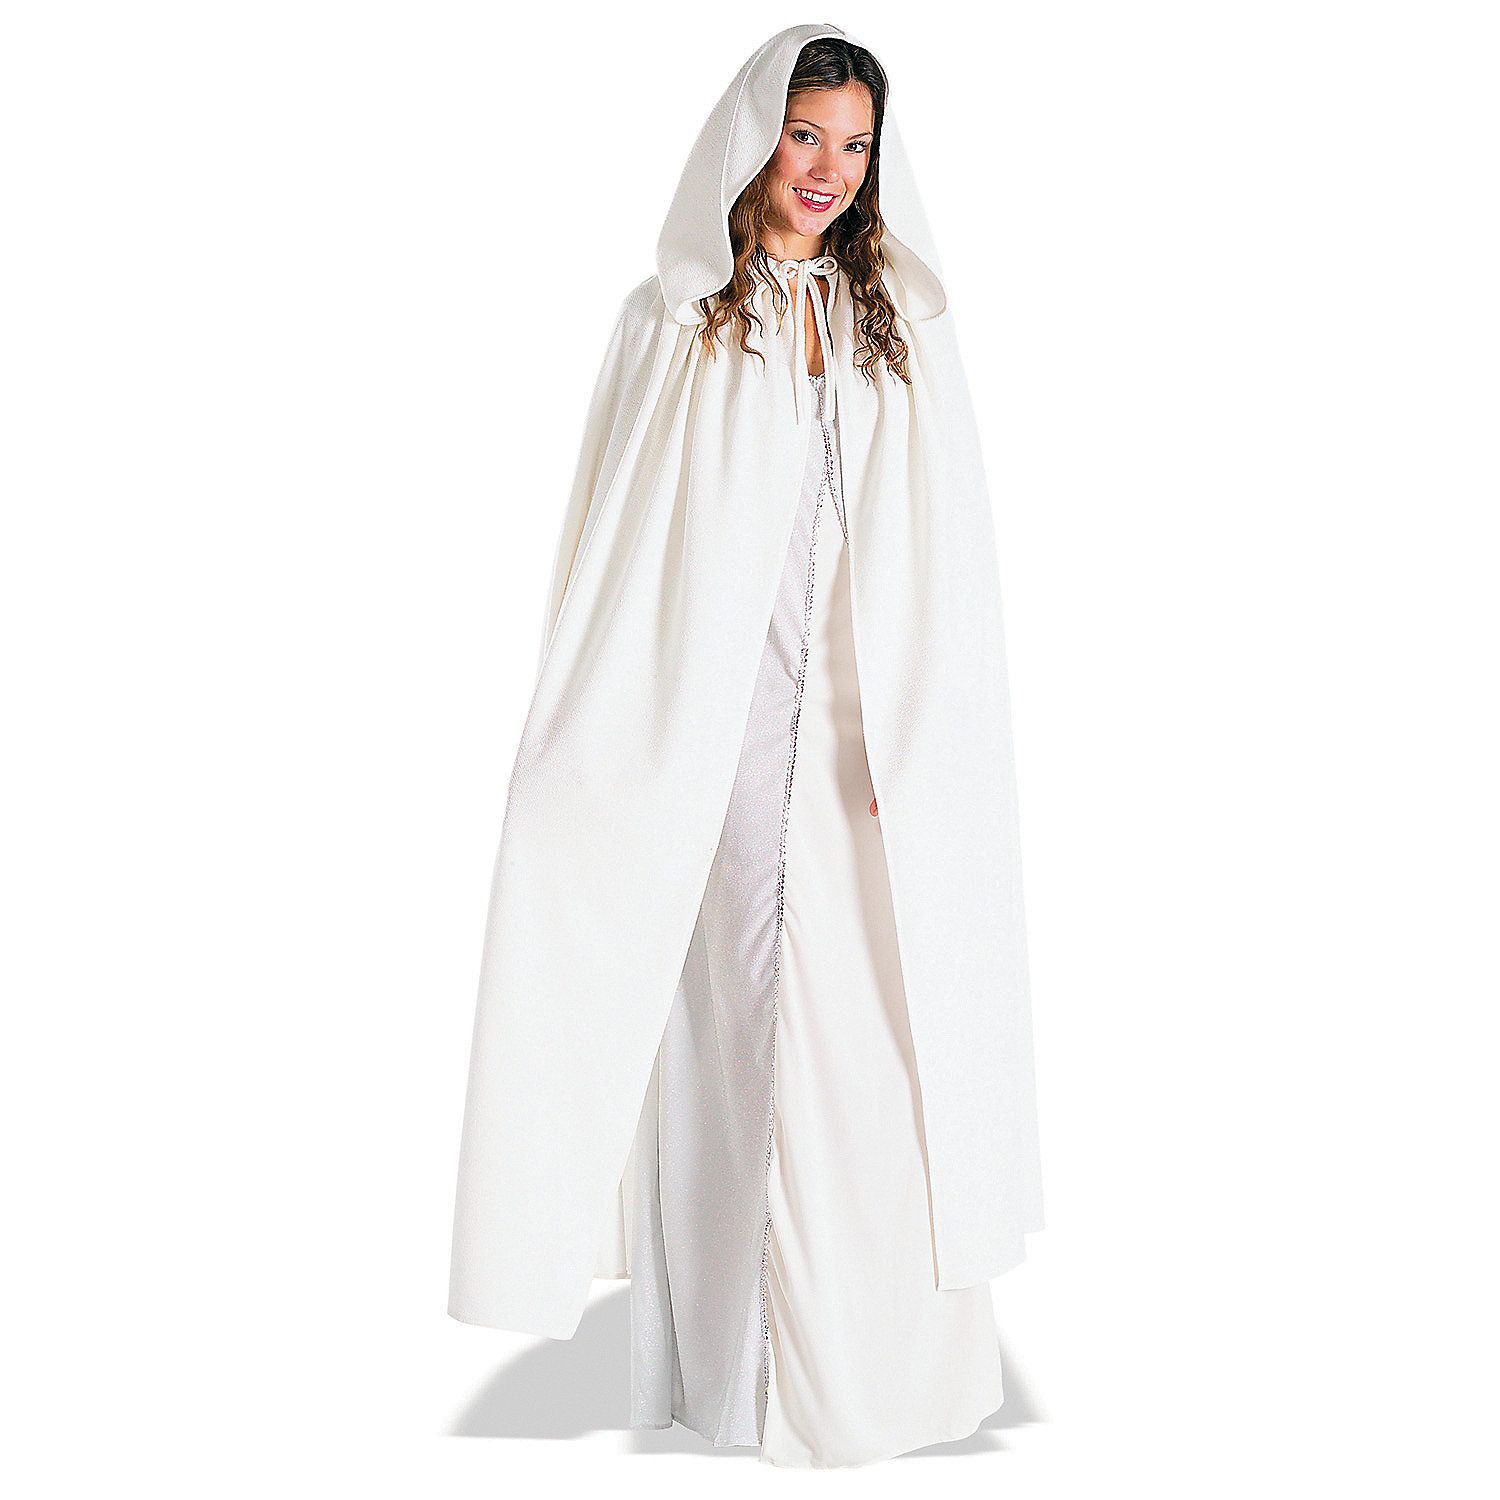 Lord of the Rings™ Arwen Adult Women's Costume